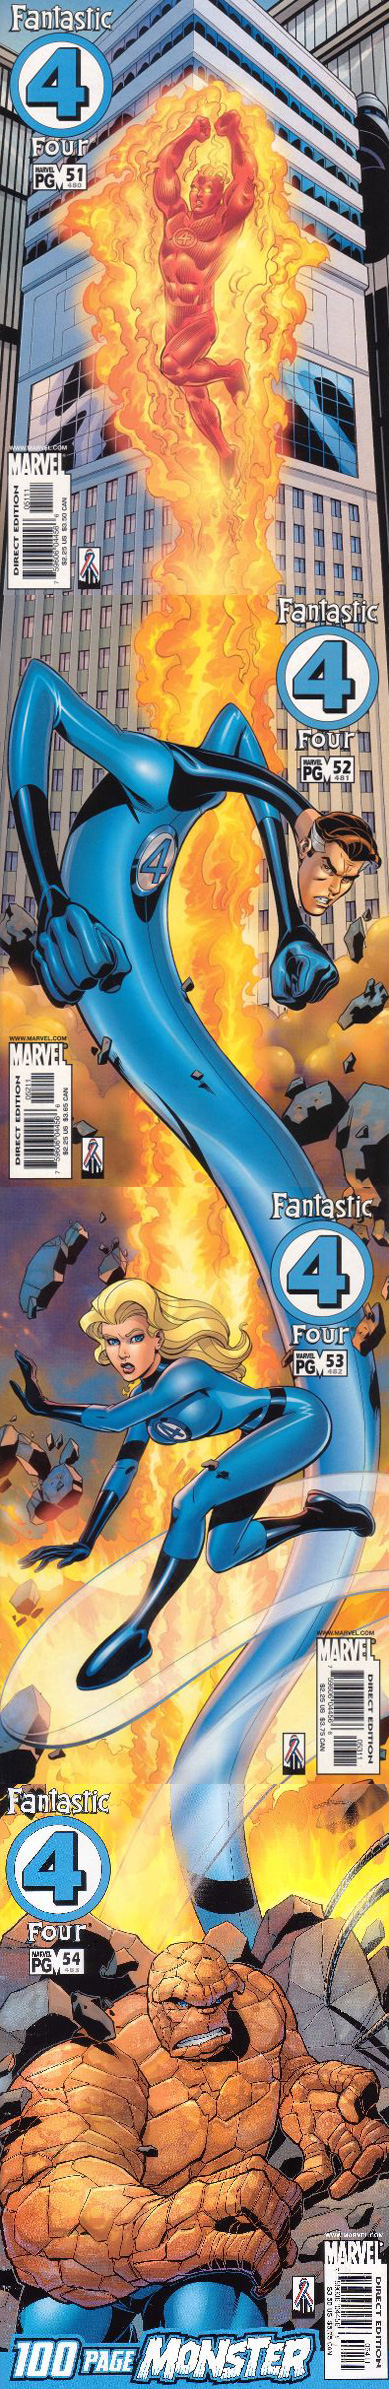 FF v.3 #51-54